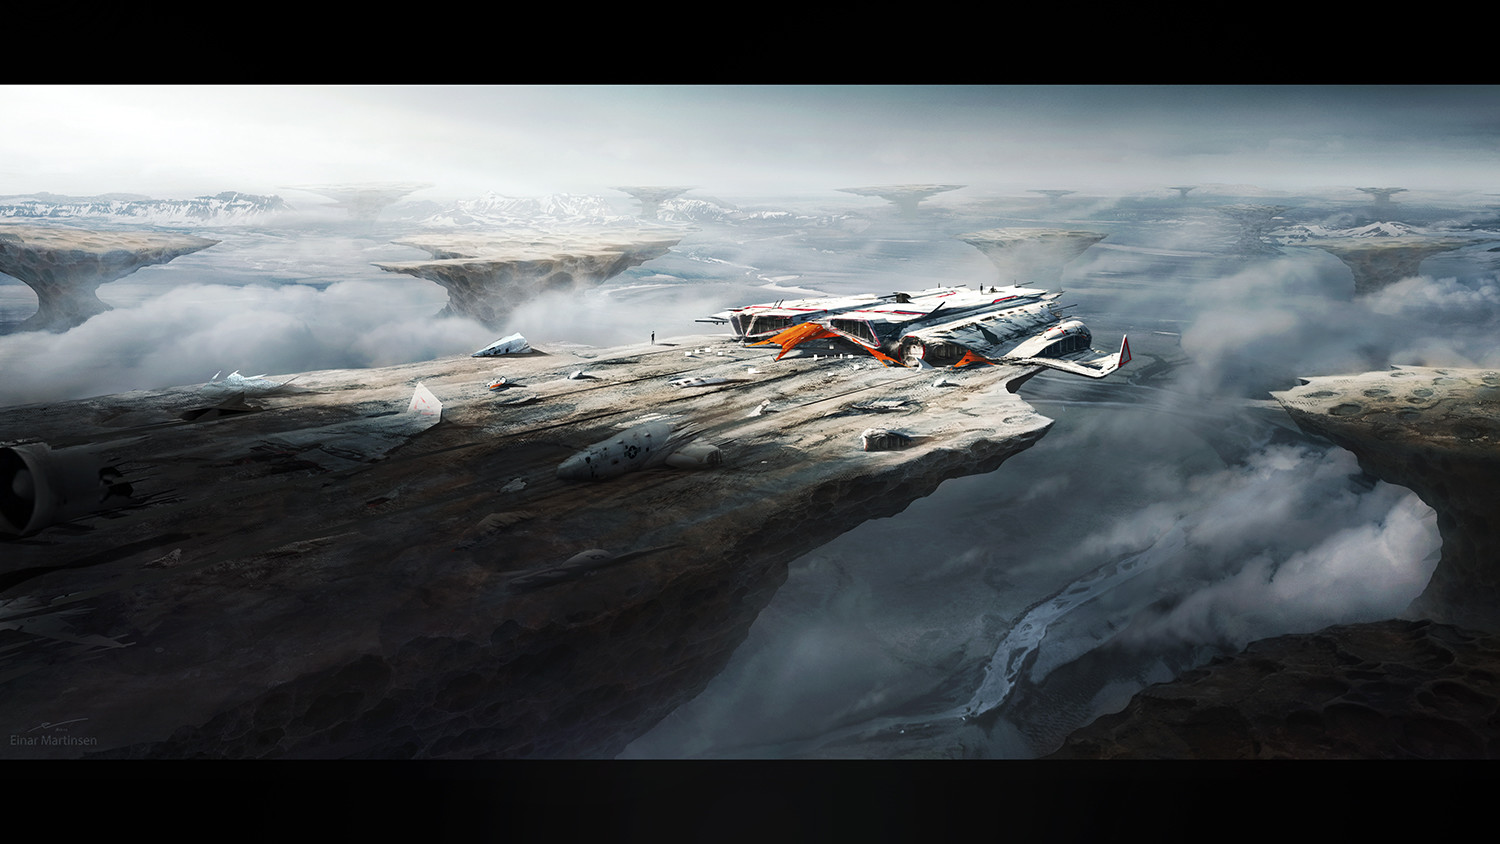 Production design course with Dylan Cole - Artwork by Einar Martinsen - inhospitable planet